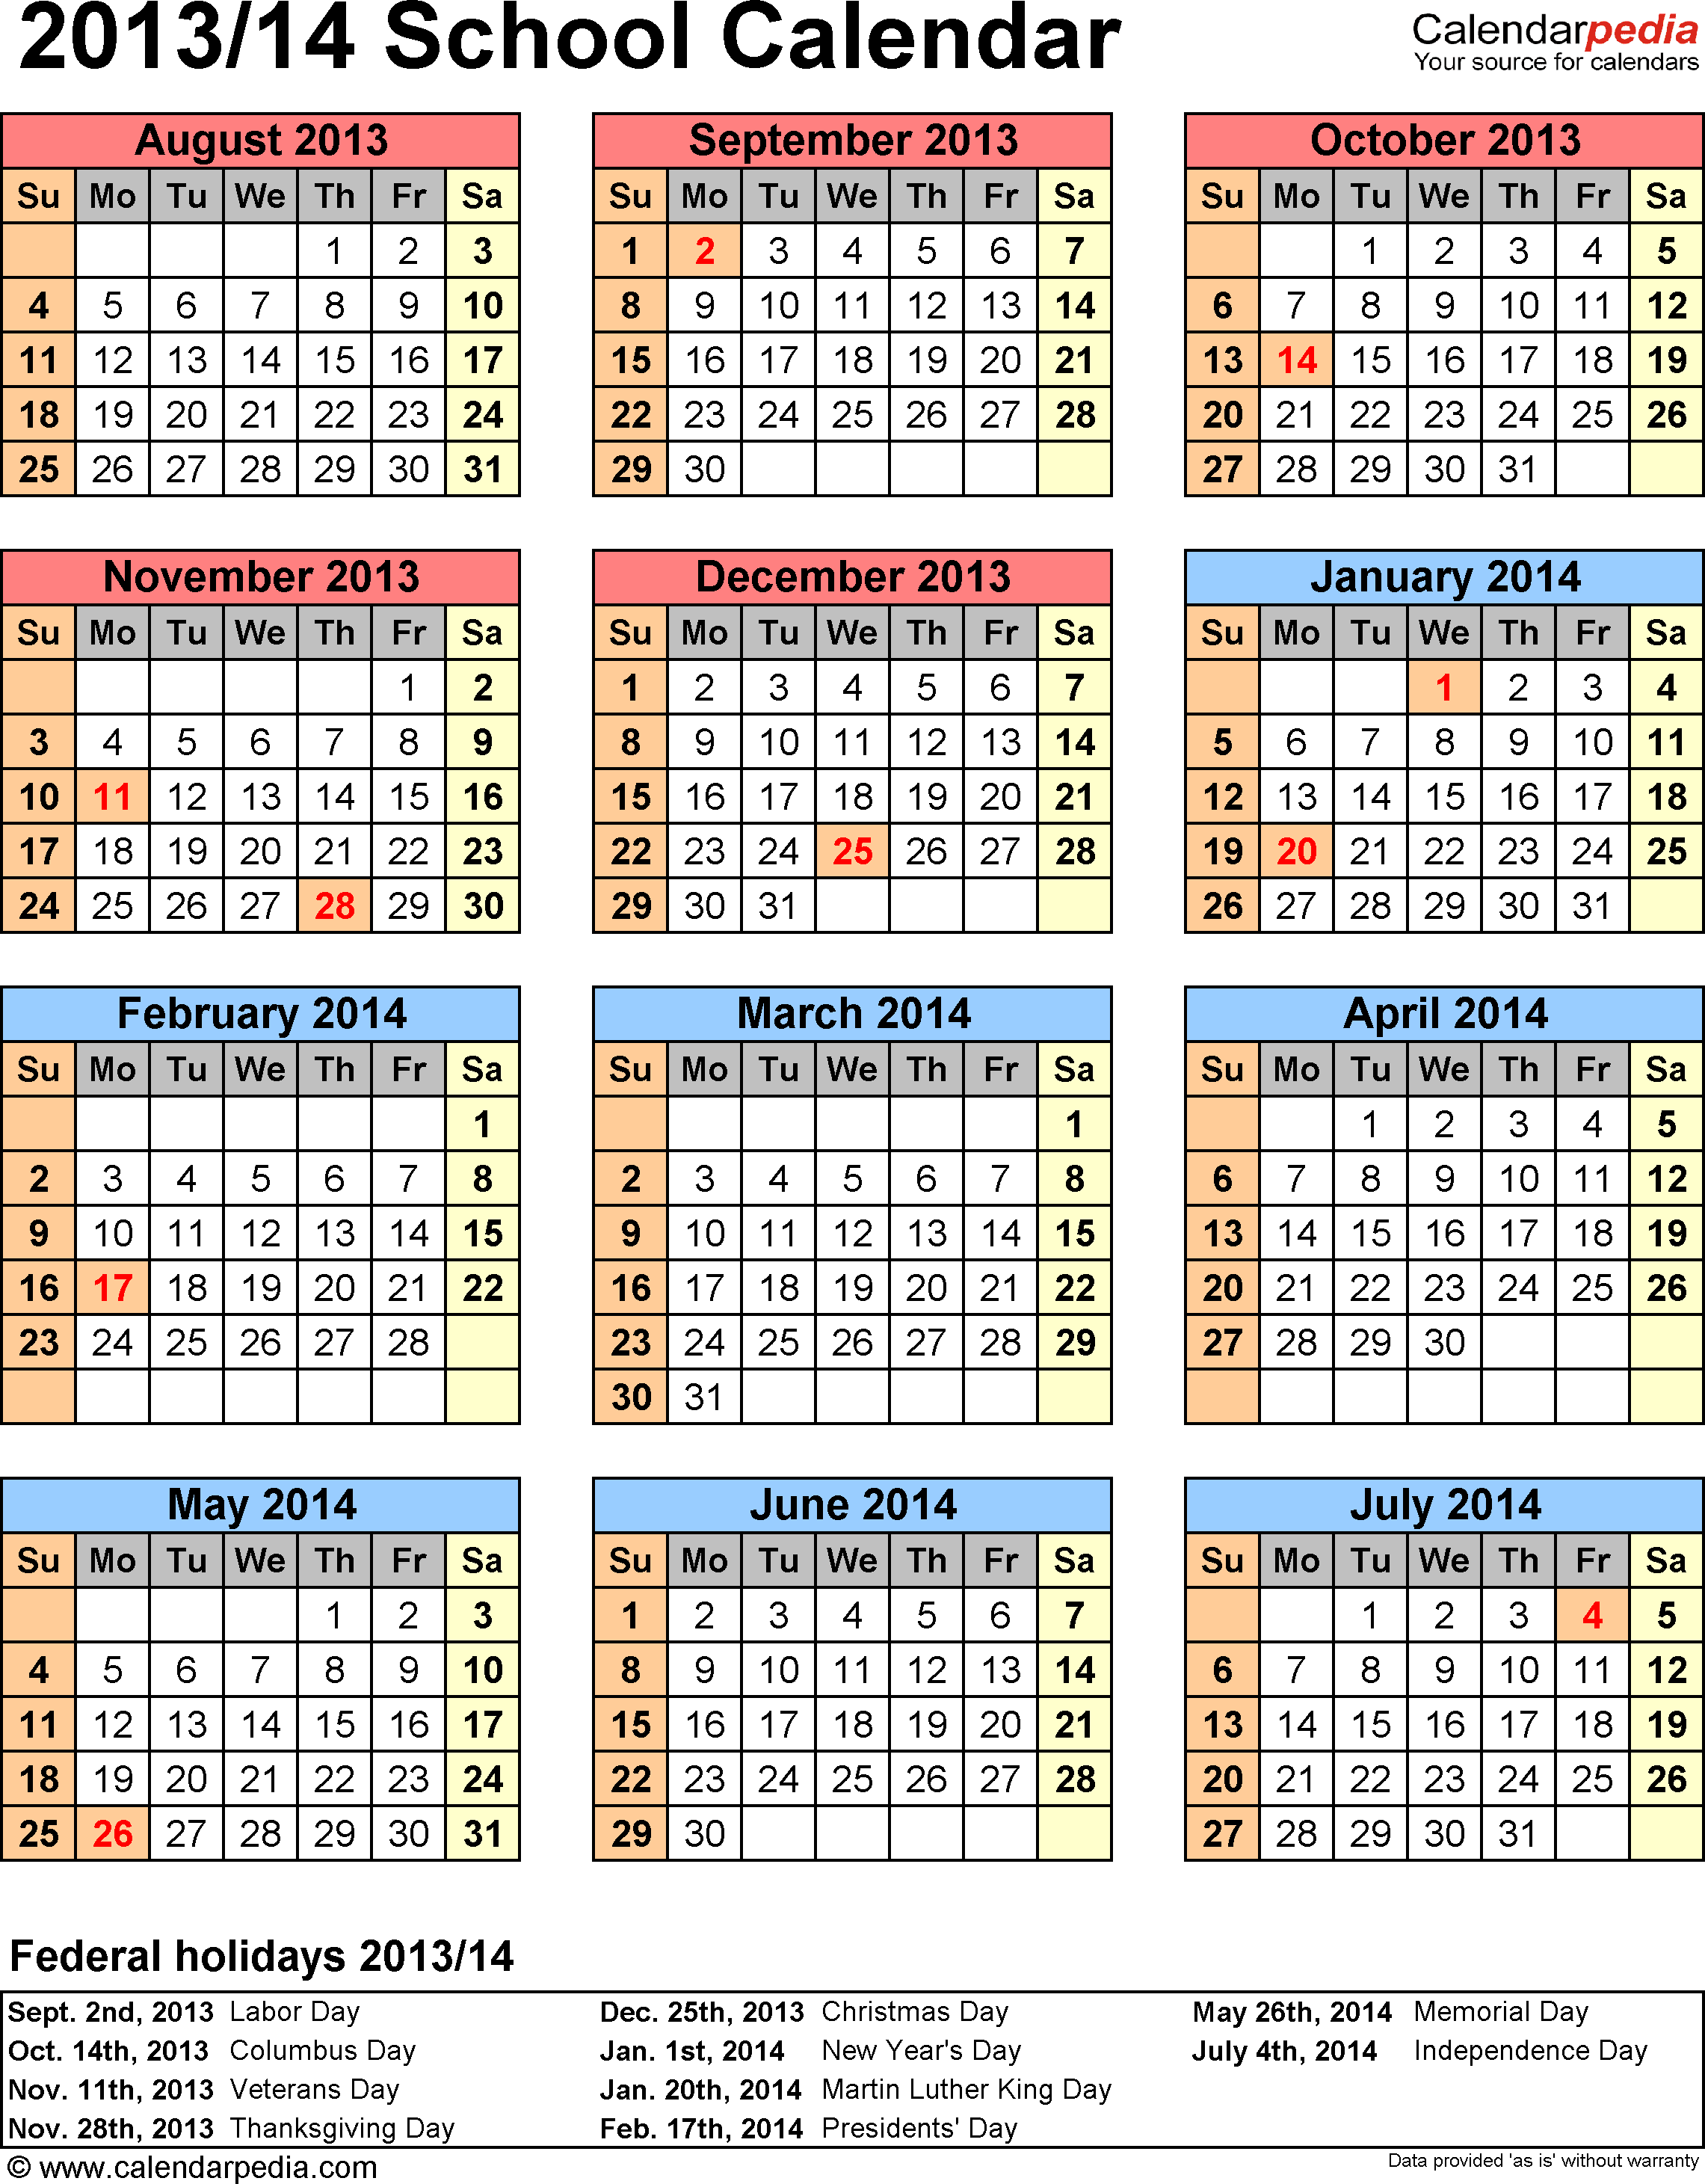 Template 6: School calendar 2013/14 for Word, portrait orientation, year at a glance, 1 page